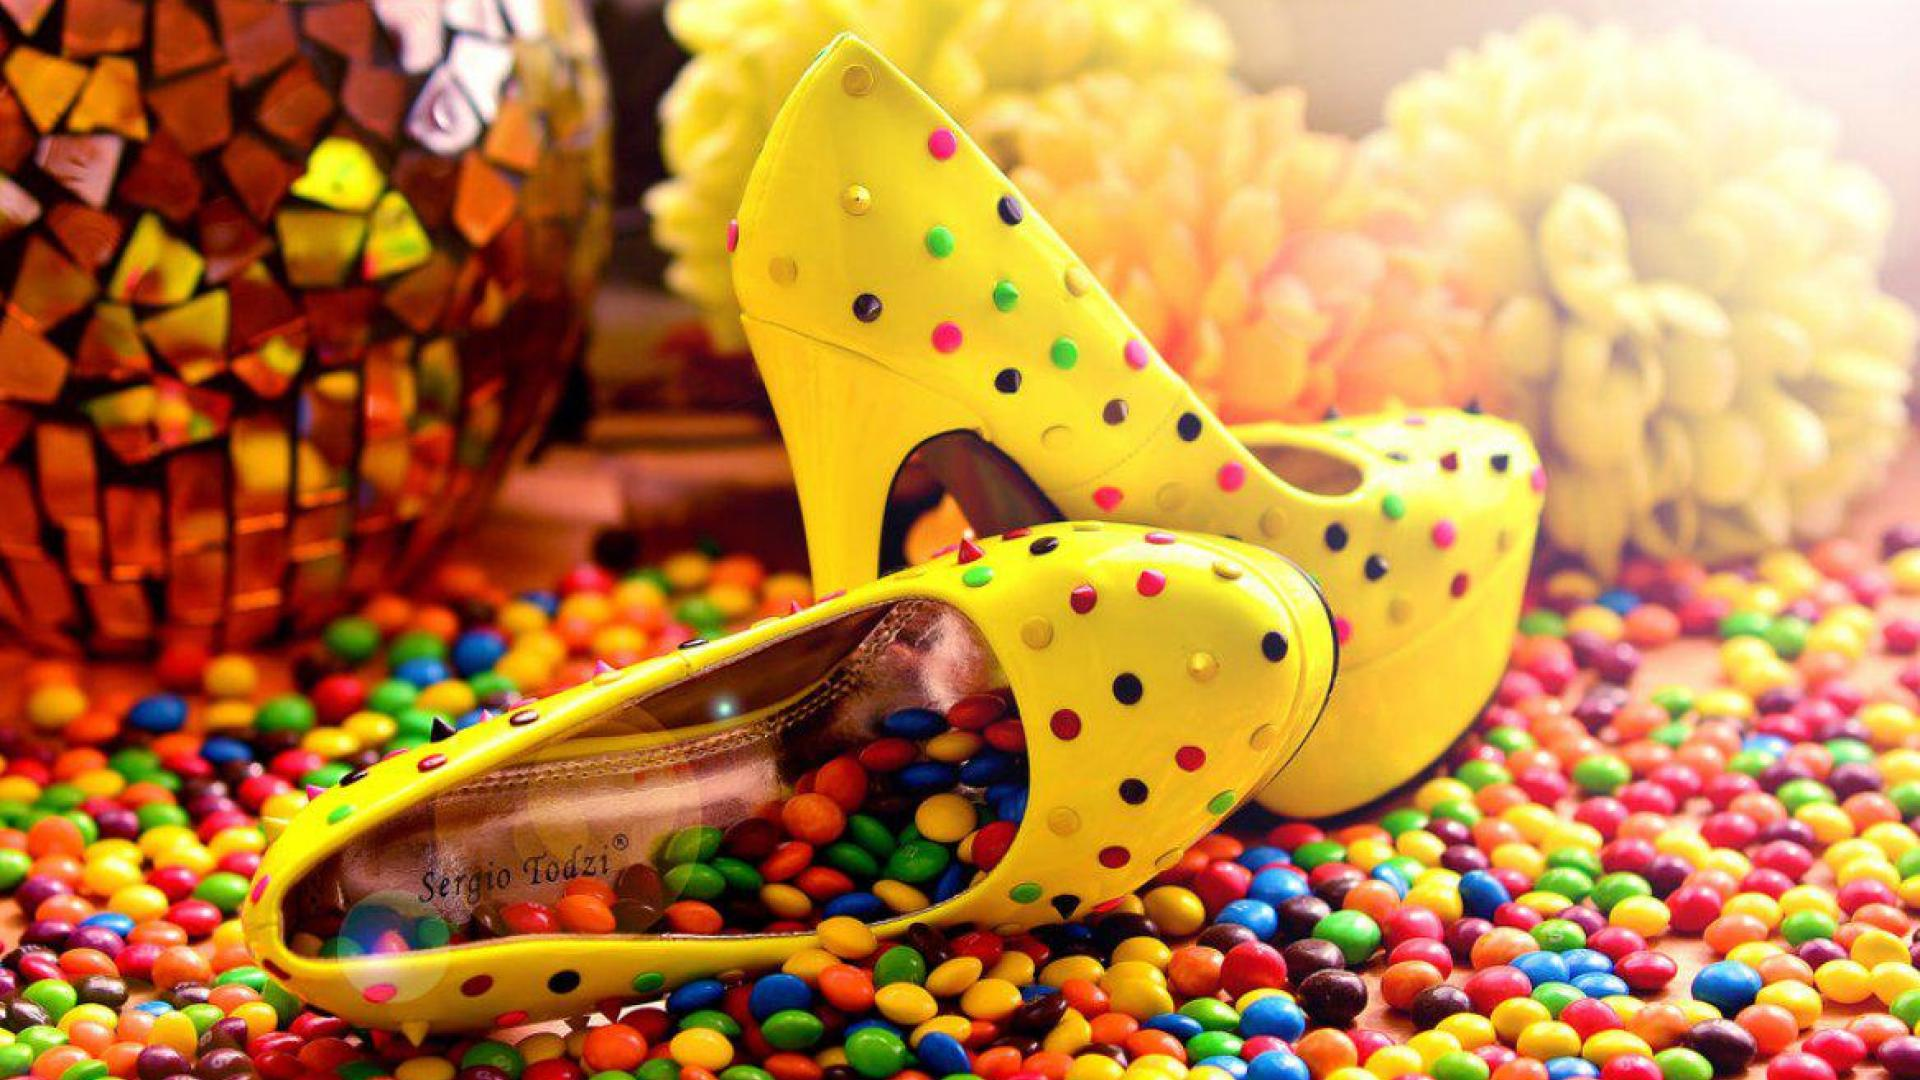 peeps easter candy desktop wallpaper - photo #40